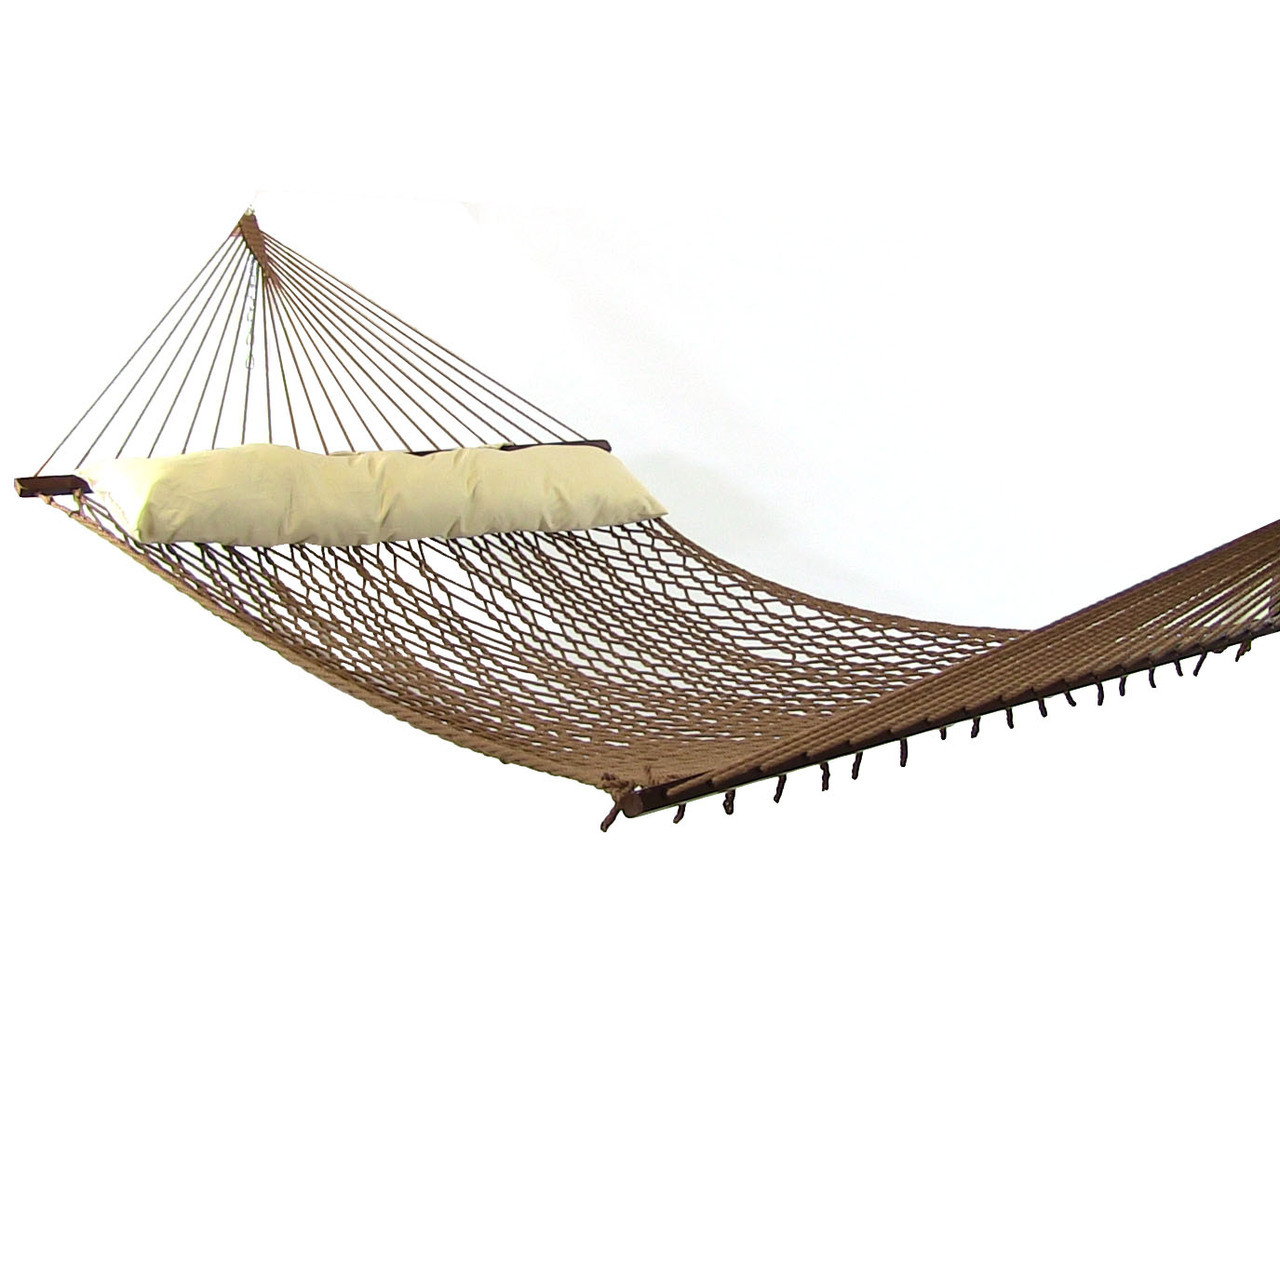 Rope Hammock With Spreader Bars Polyester 450 Pound